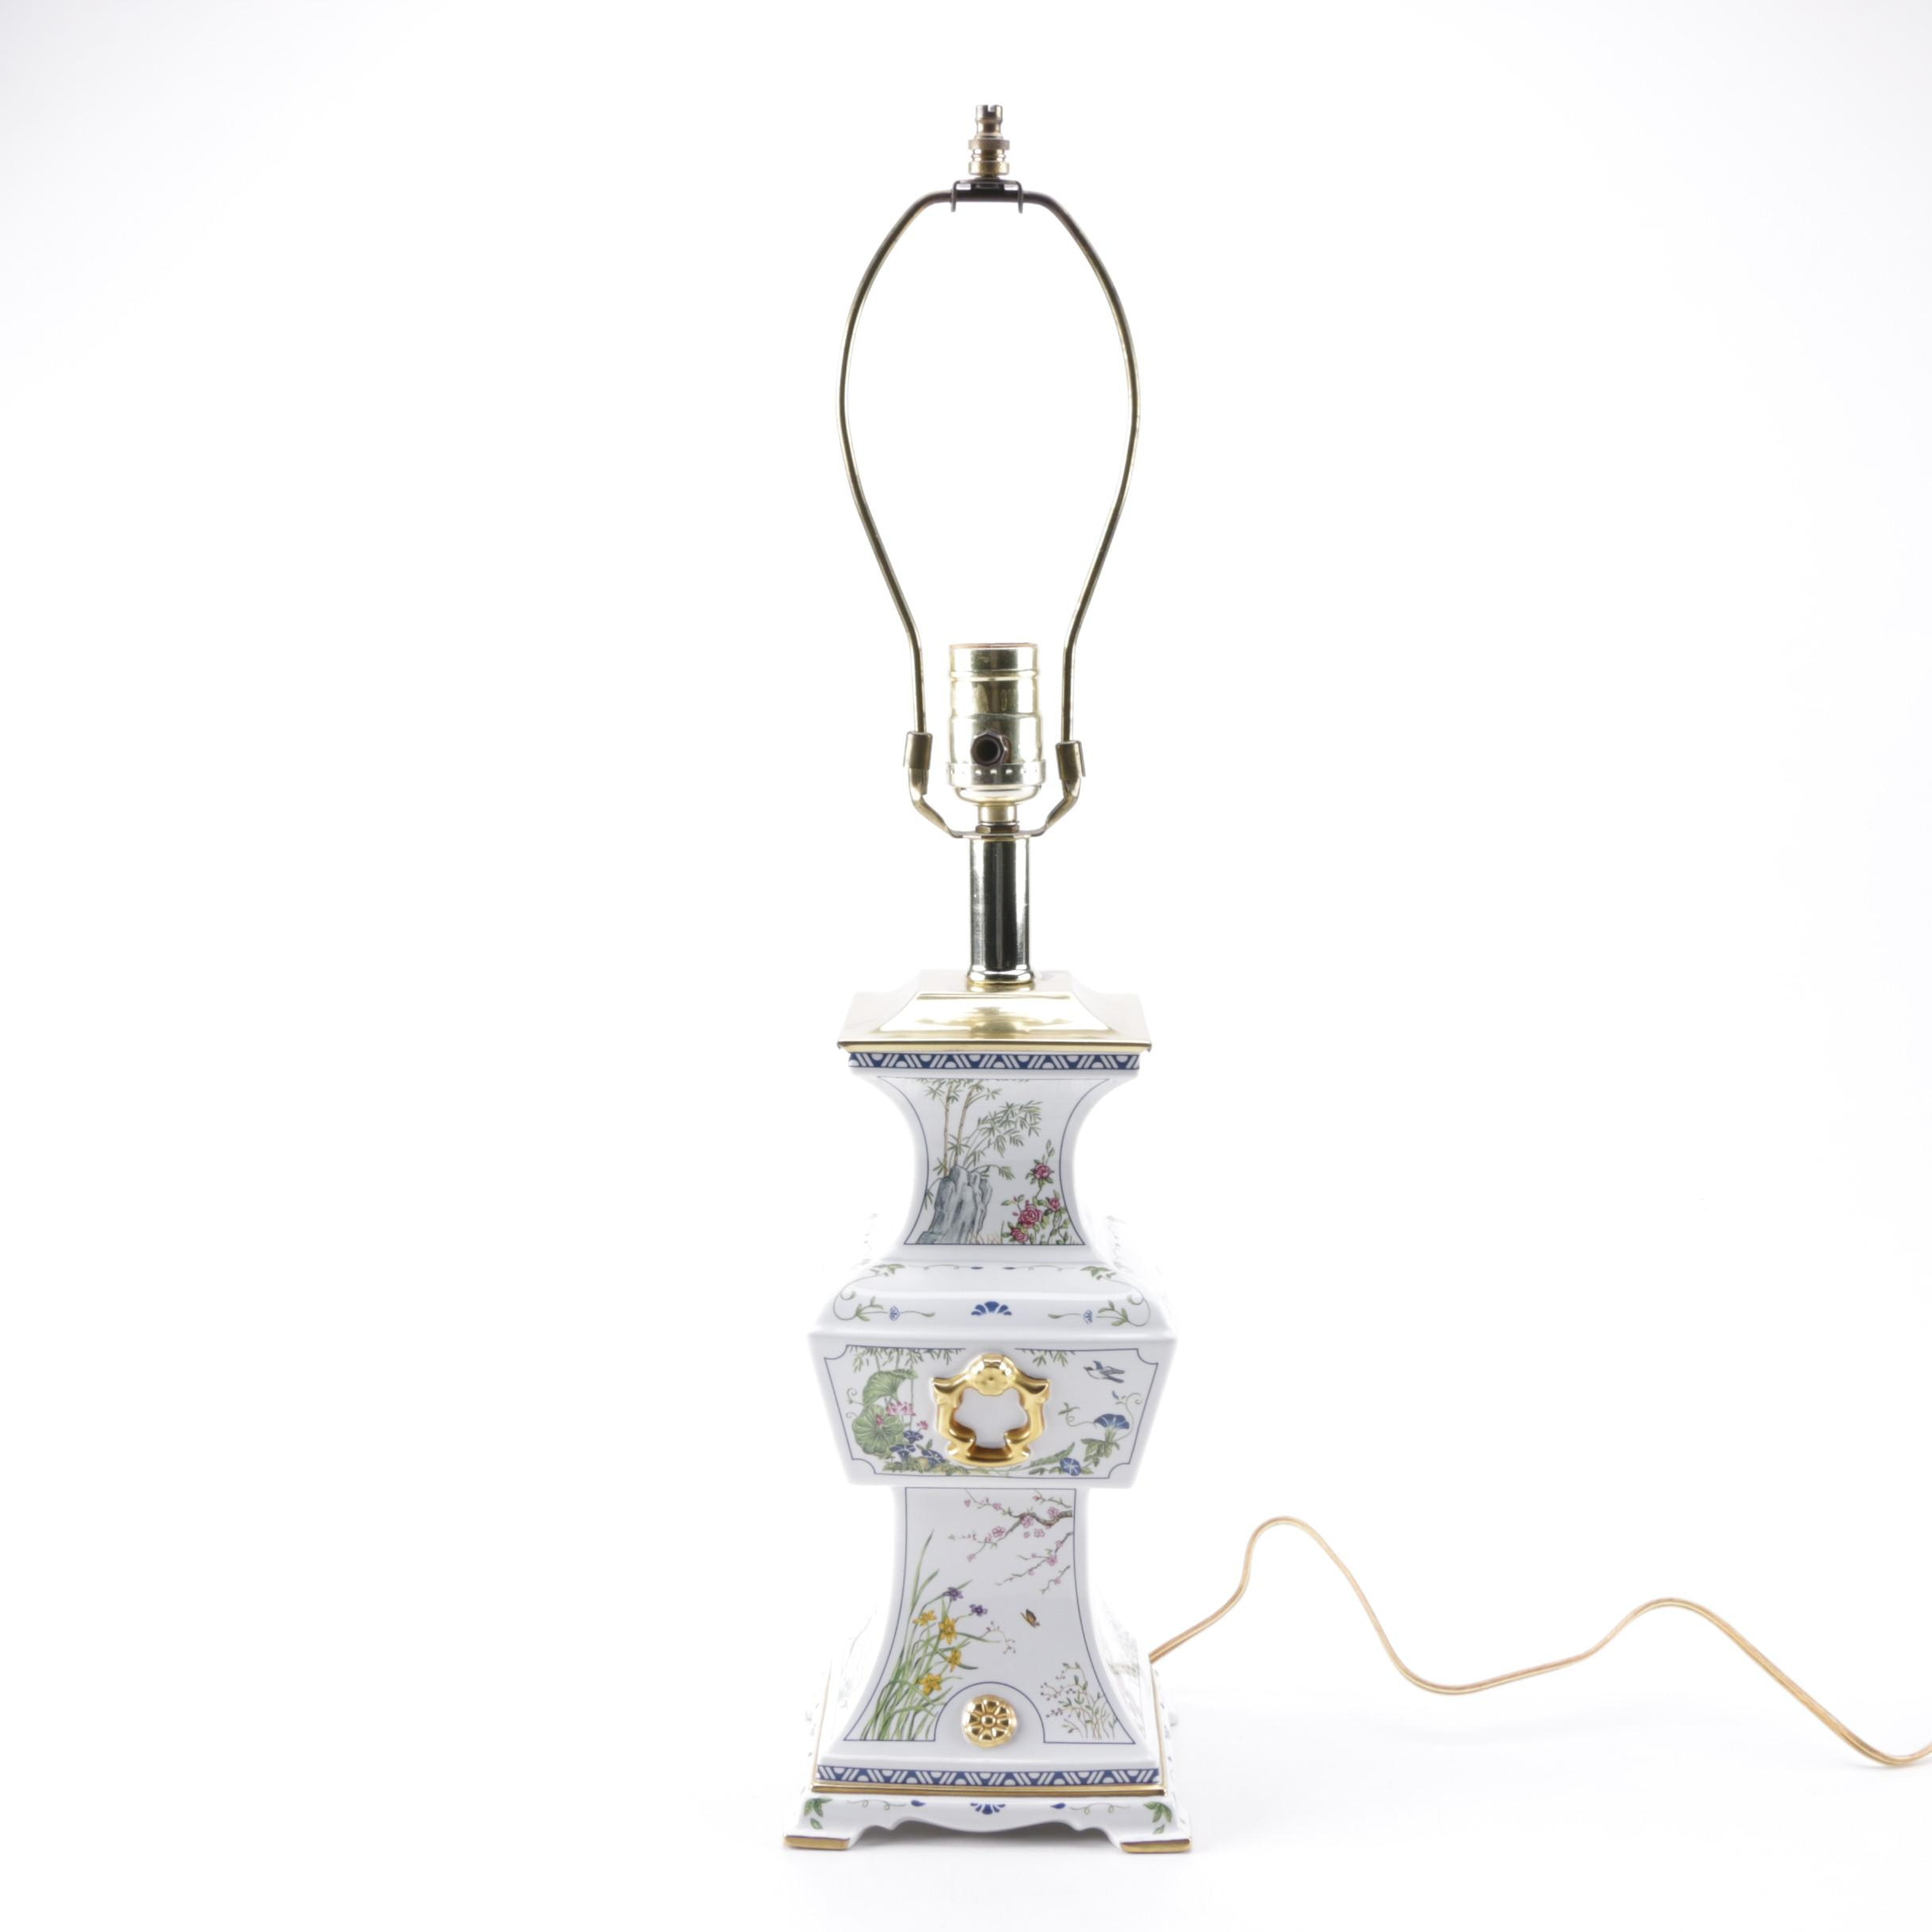 The Franklin Mint Asian Inspired Porcelain Table Lamp